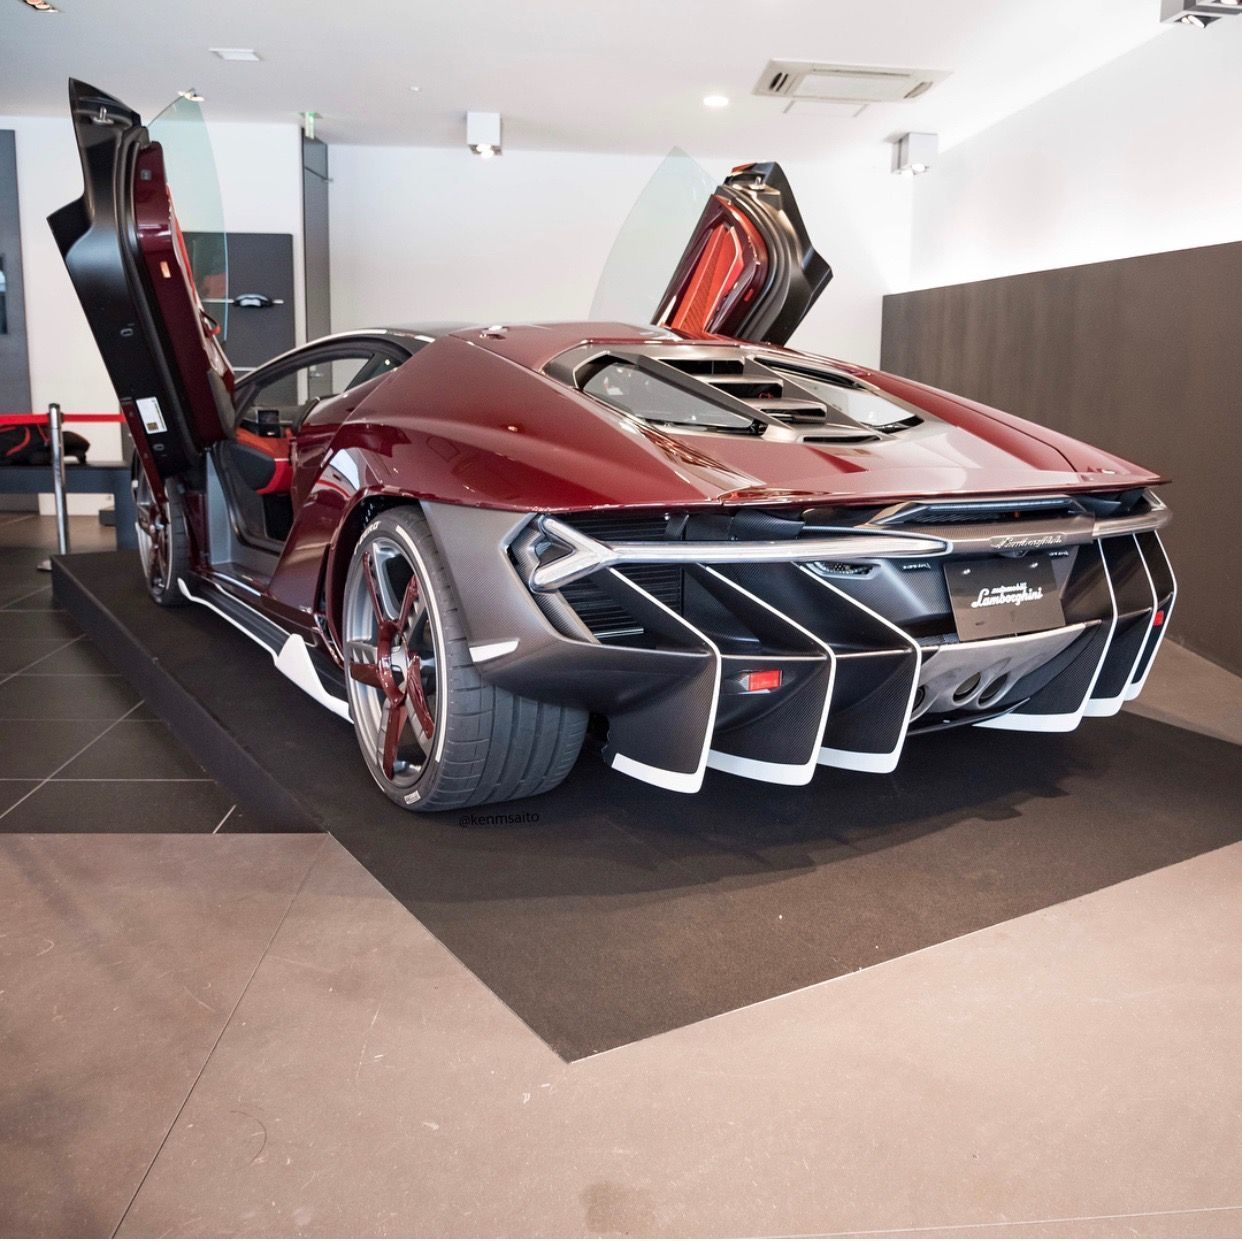 The Most Luxury Cars In The World With Best Photos Of Cars En 2020 Voitures Rares Voitures De Luxe Voitures Musclees